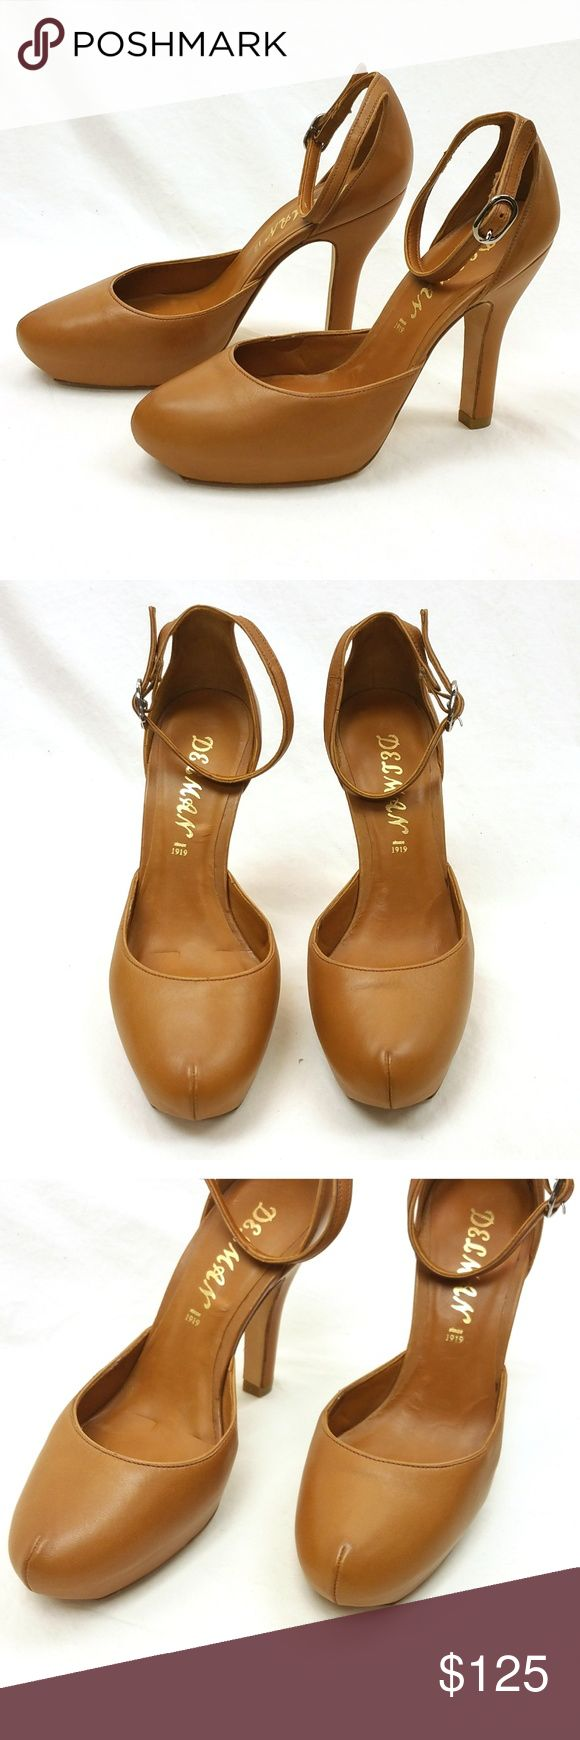 VTG Delman Leather Strappy Pumps Heels Tan Camel Gorgeous vintage Delman leather strappy pump sandals in warm camel!  I did so much research on these and was unable to pinpoint the era these were made in but they really don't show their age.  They were made in Spain sometime prior the 1980s.    Founded in 1919, Delman still makes gorgeous, high quality shoes but these heels in particular are just stunning.  Very light wear; one small dark spot shown in photos.  No major damage otherwise…